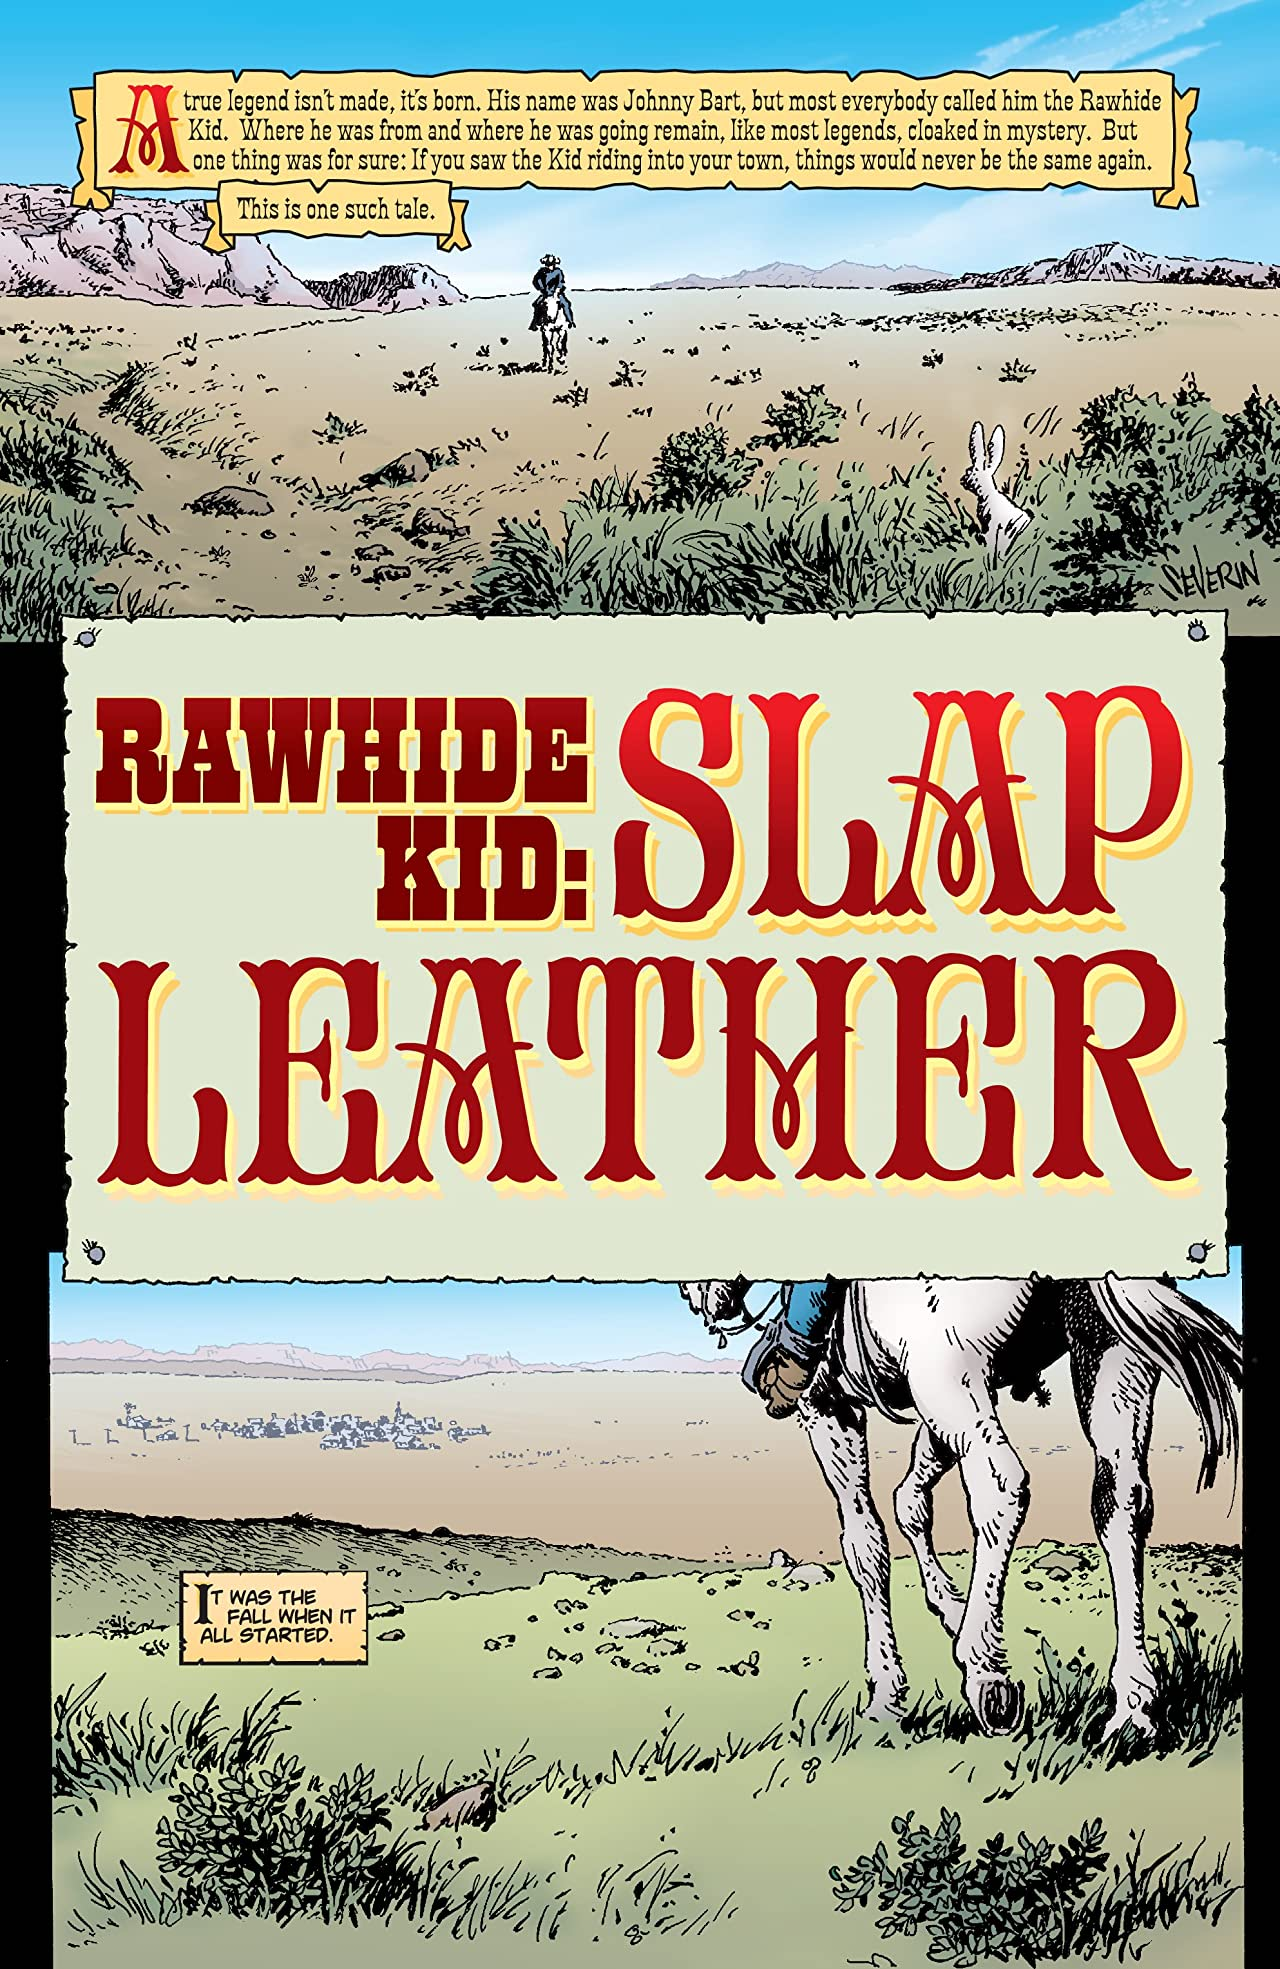 Rawhide Kid: Slap Leather